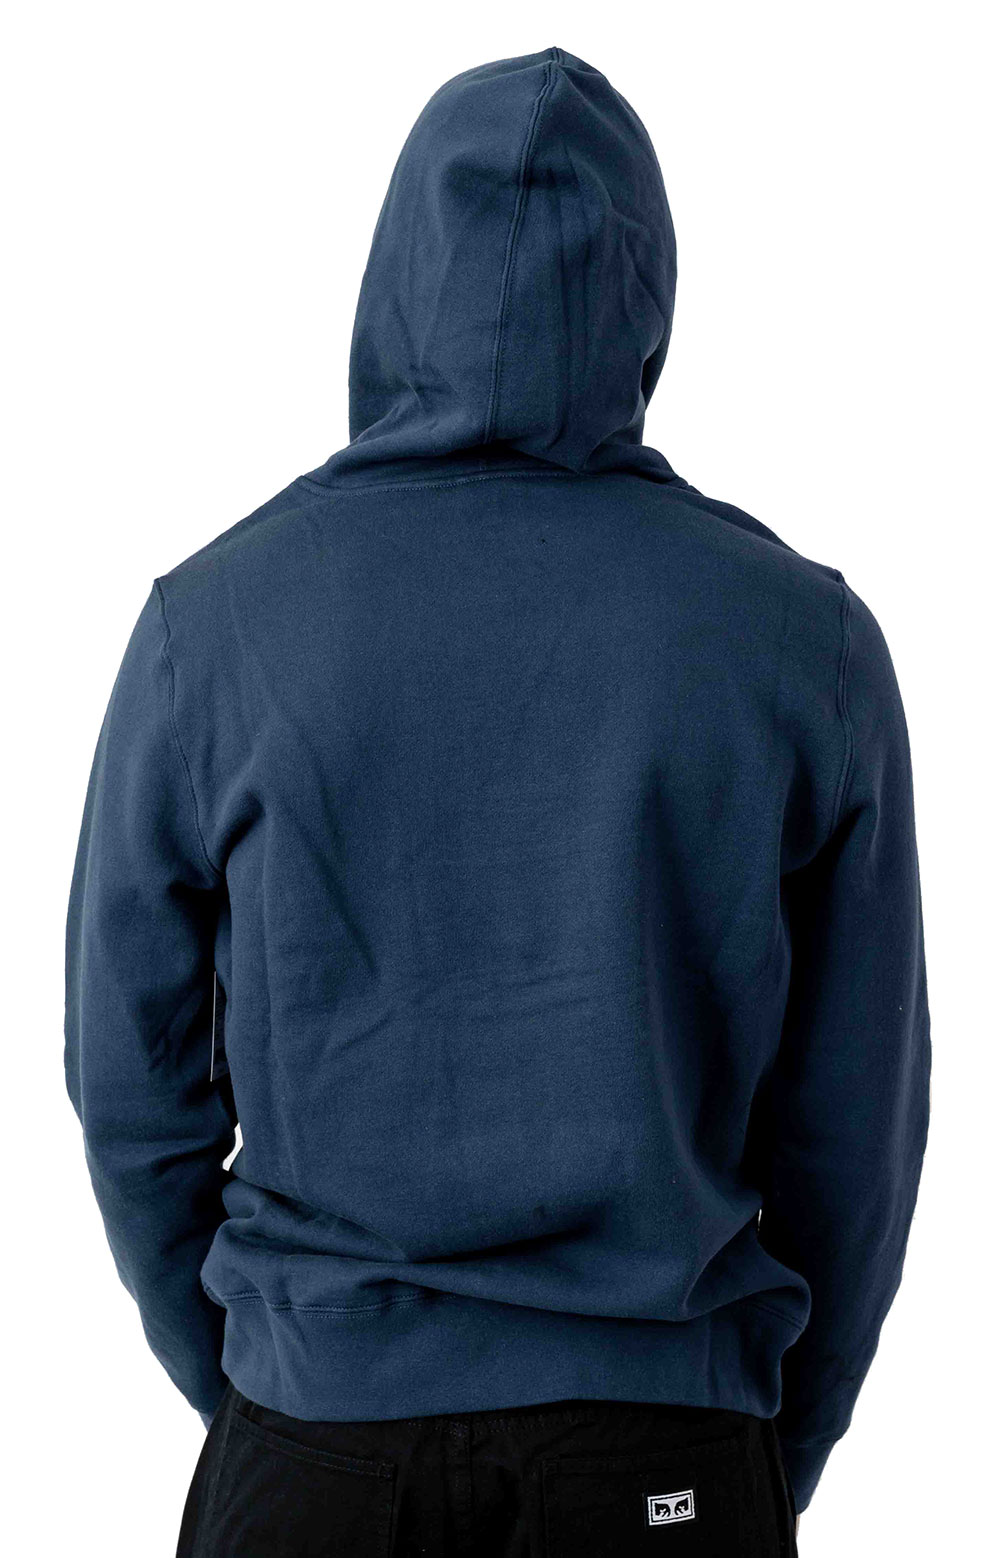 See You In Hell Pullover Hoodie - Insignia Blue 3